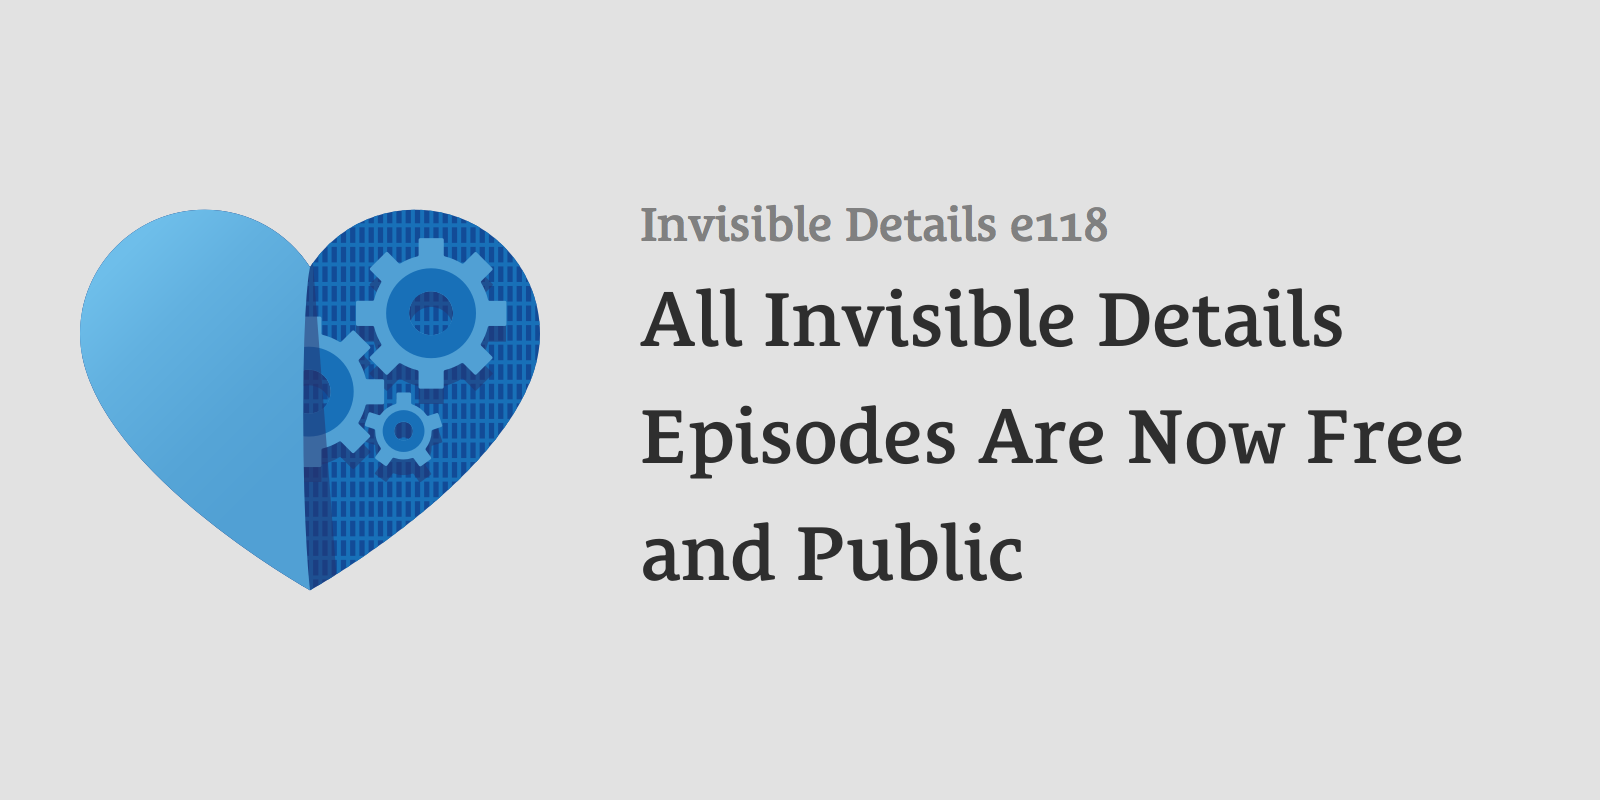 "./phantomjs generator.js invisibledetails 118 ""All Invisible Details Episodes Are Now Free and Public"""